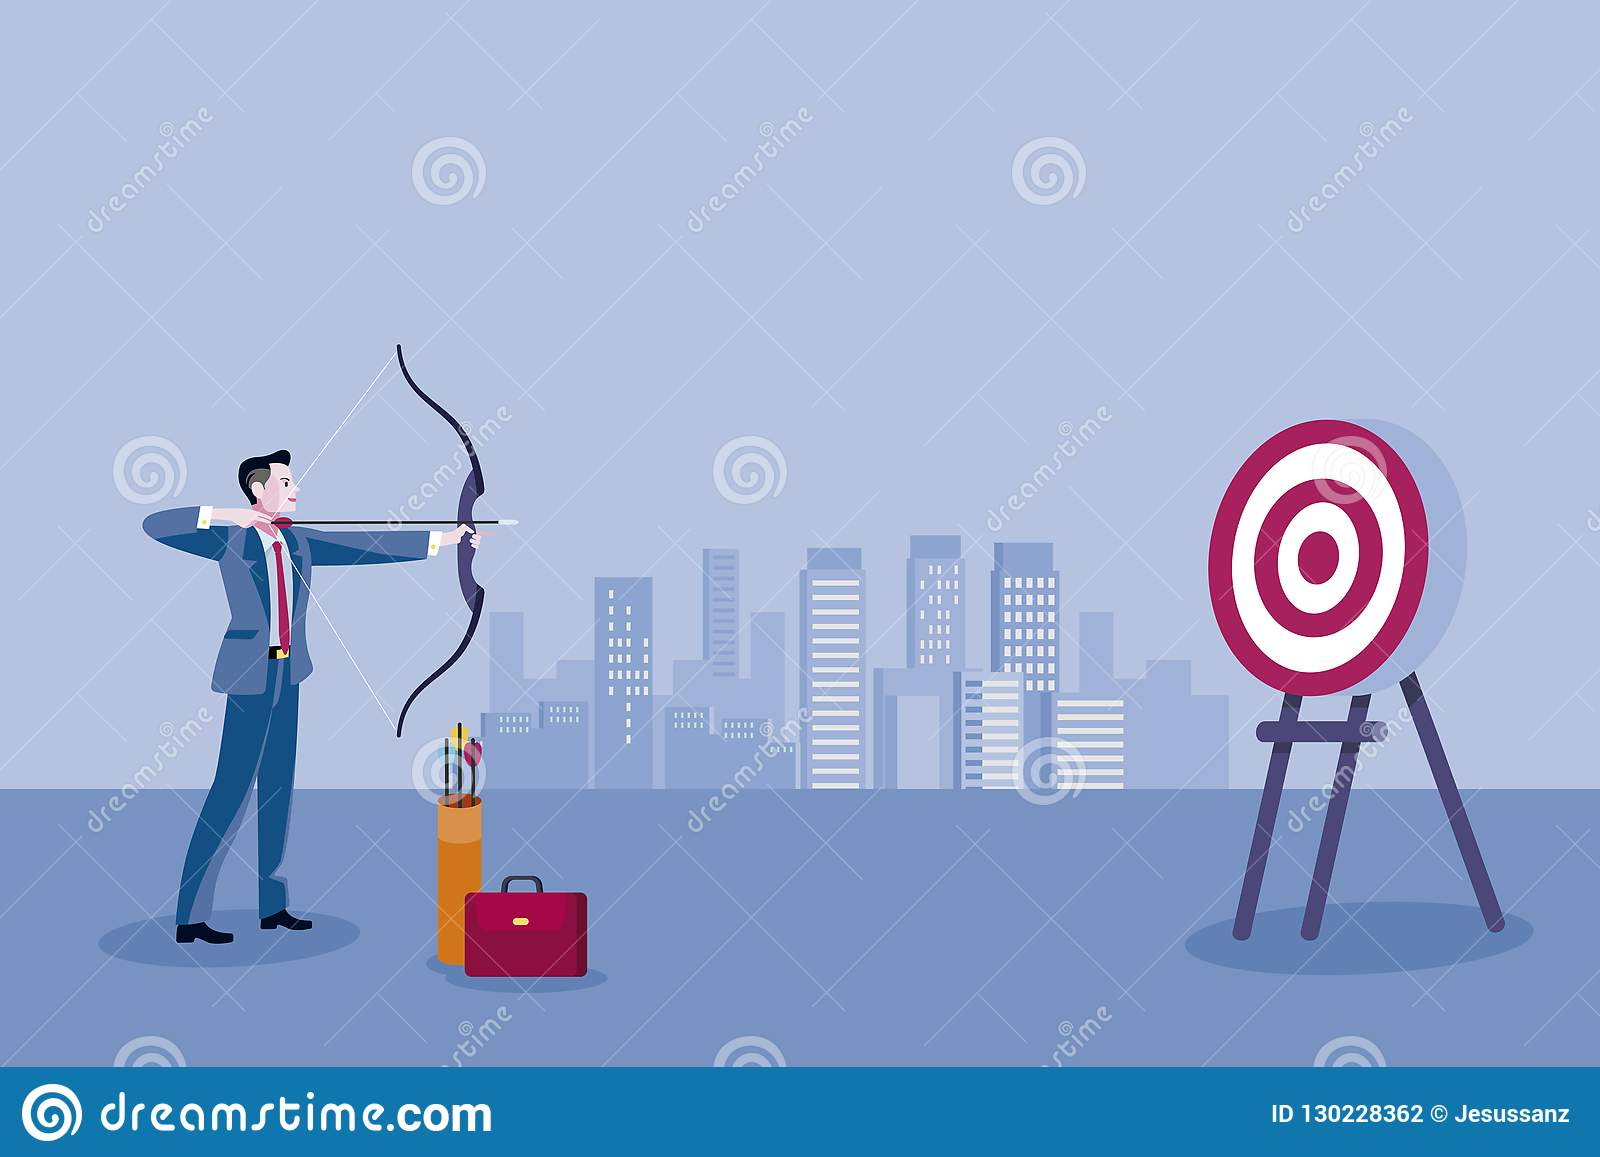 hight resolution of archery and business man business man aiming at the target concept business vector illustration